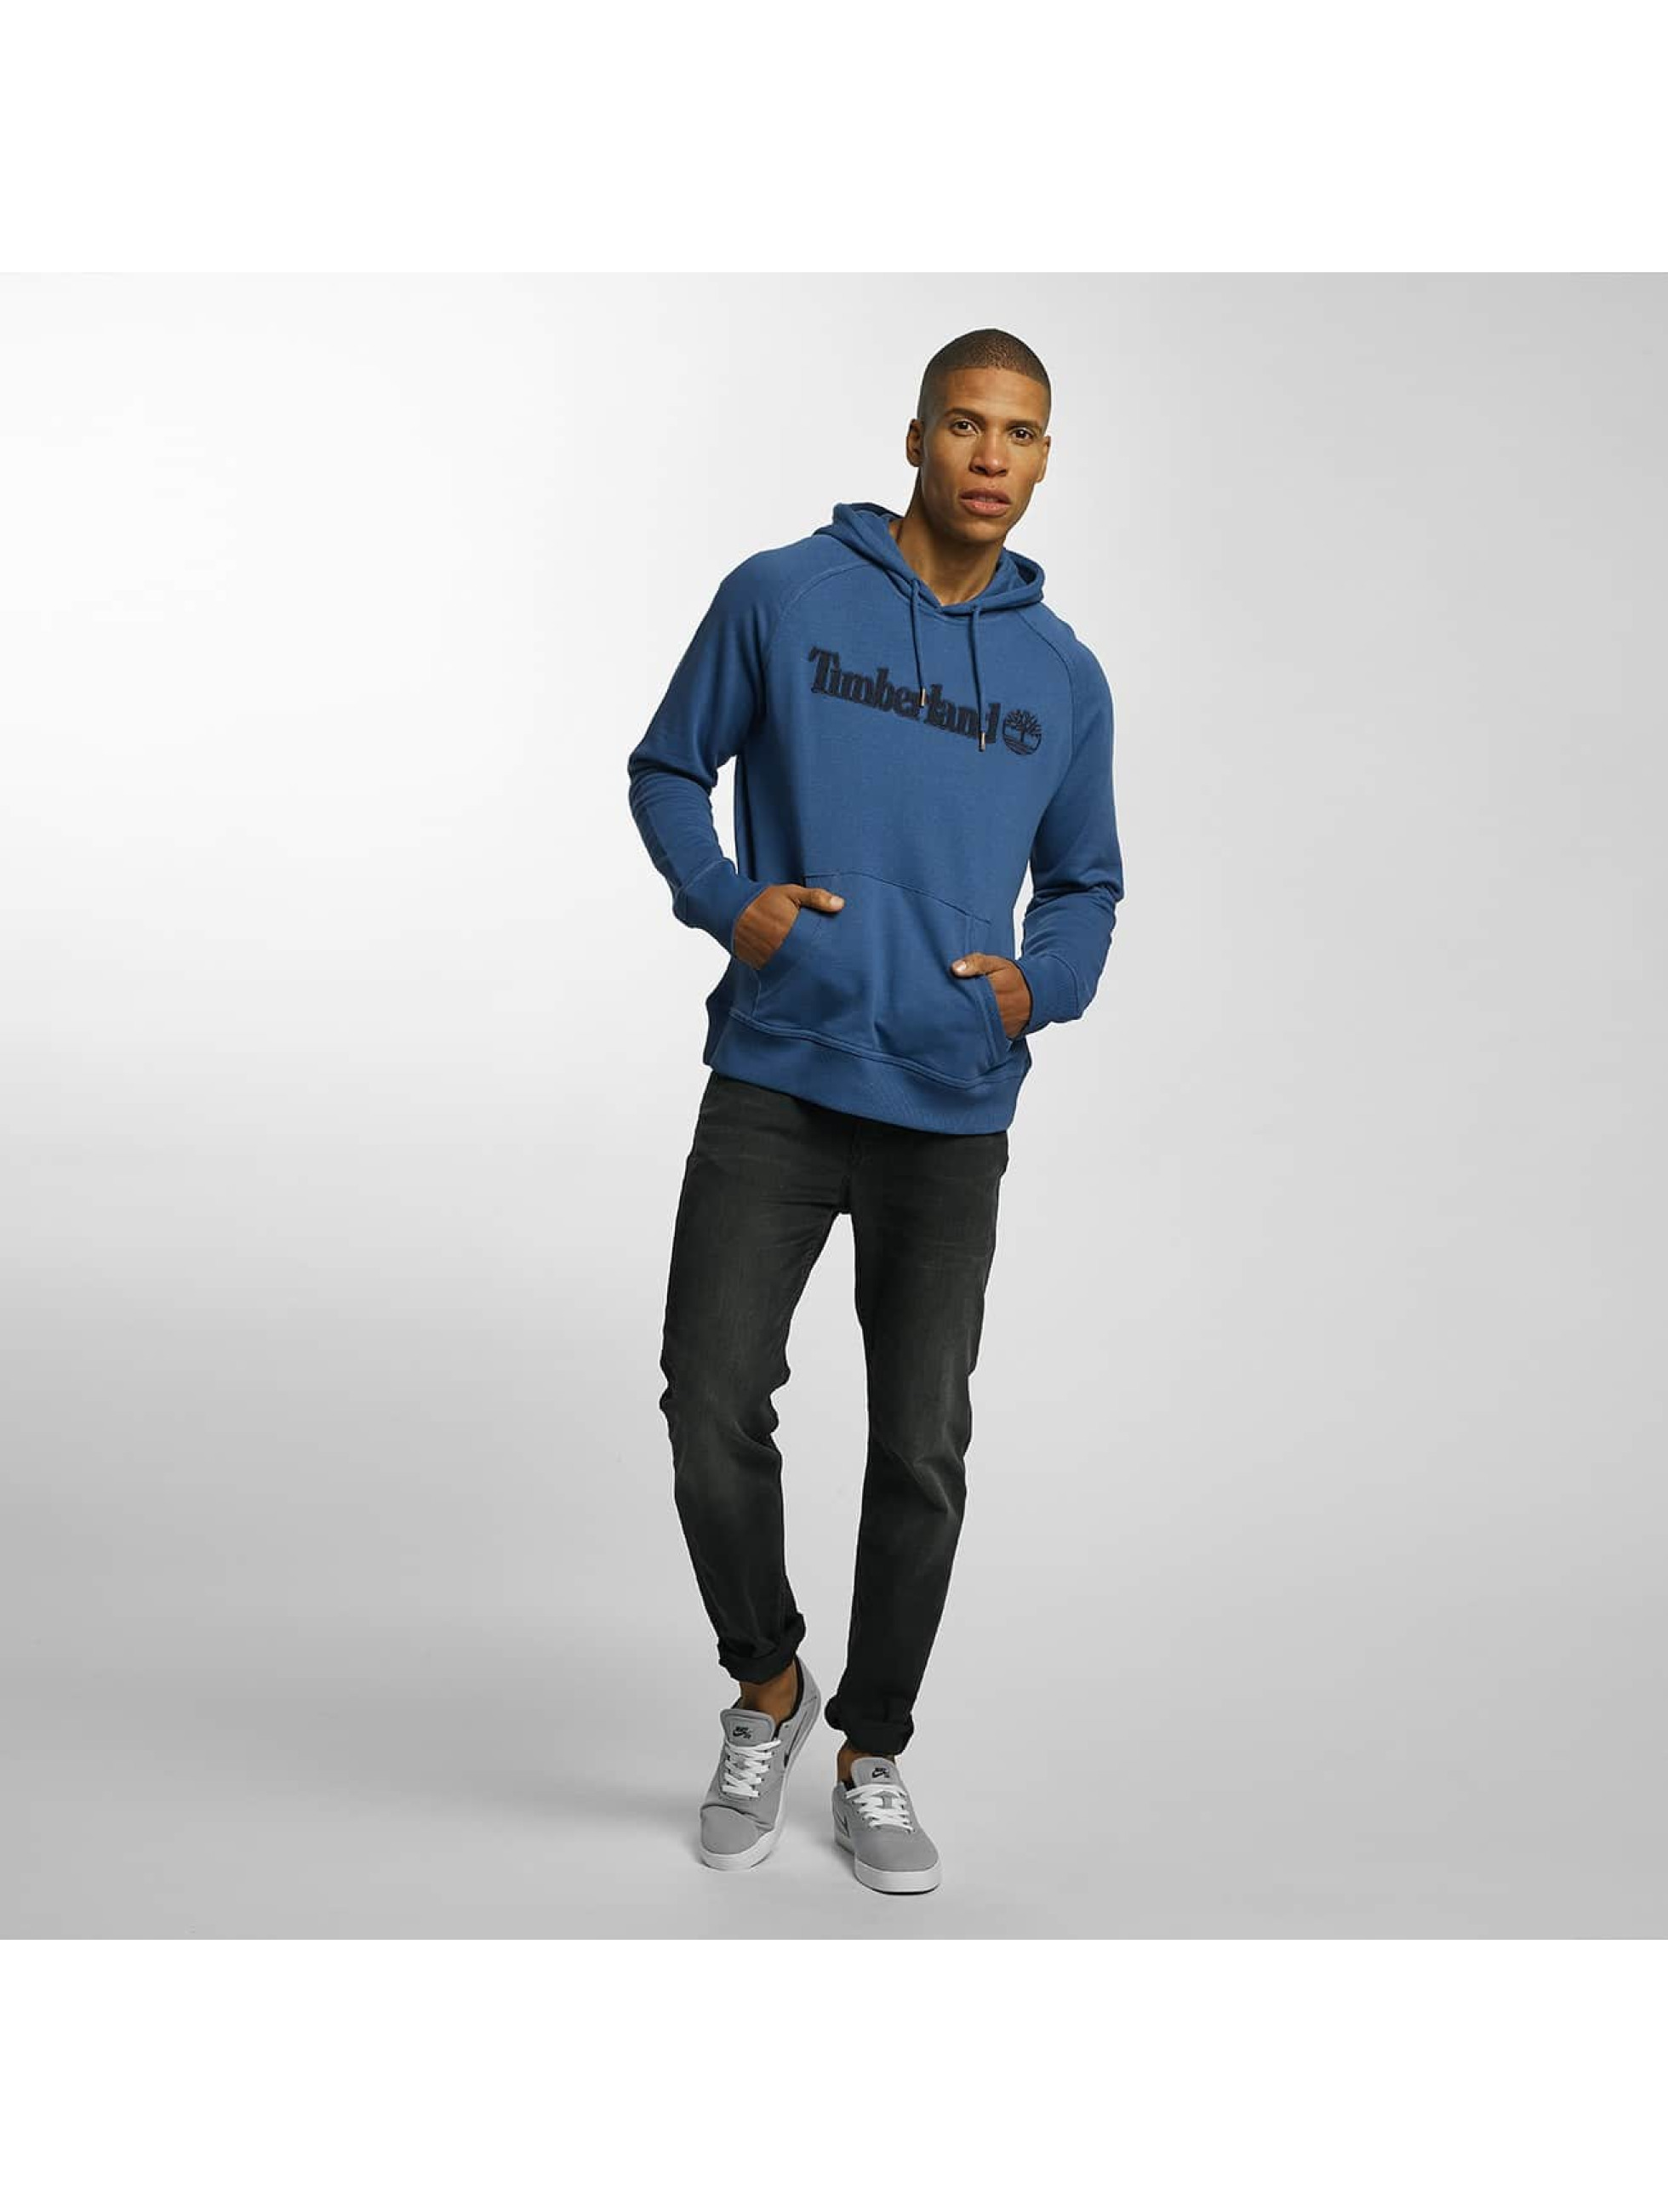 Timberland Sweat capuche Graph bleu